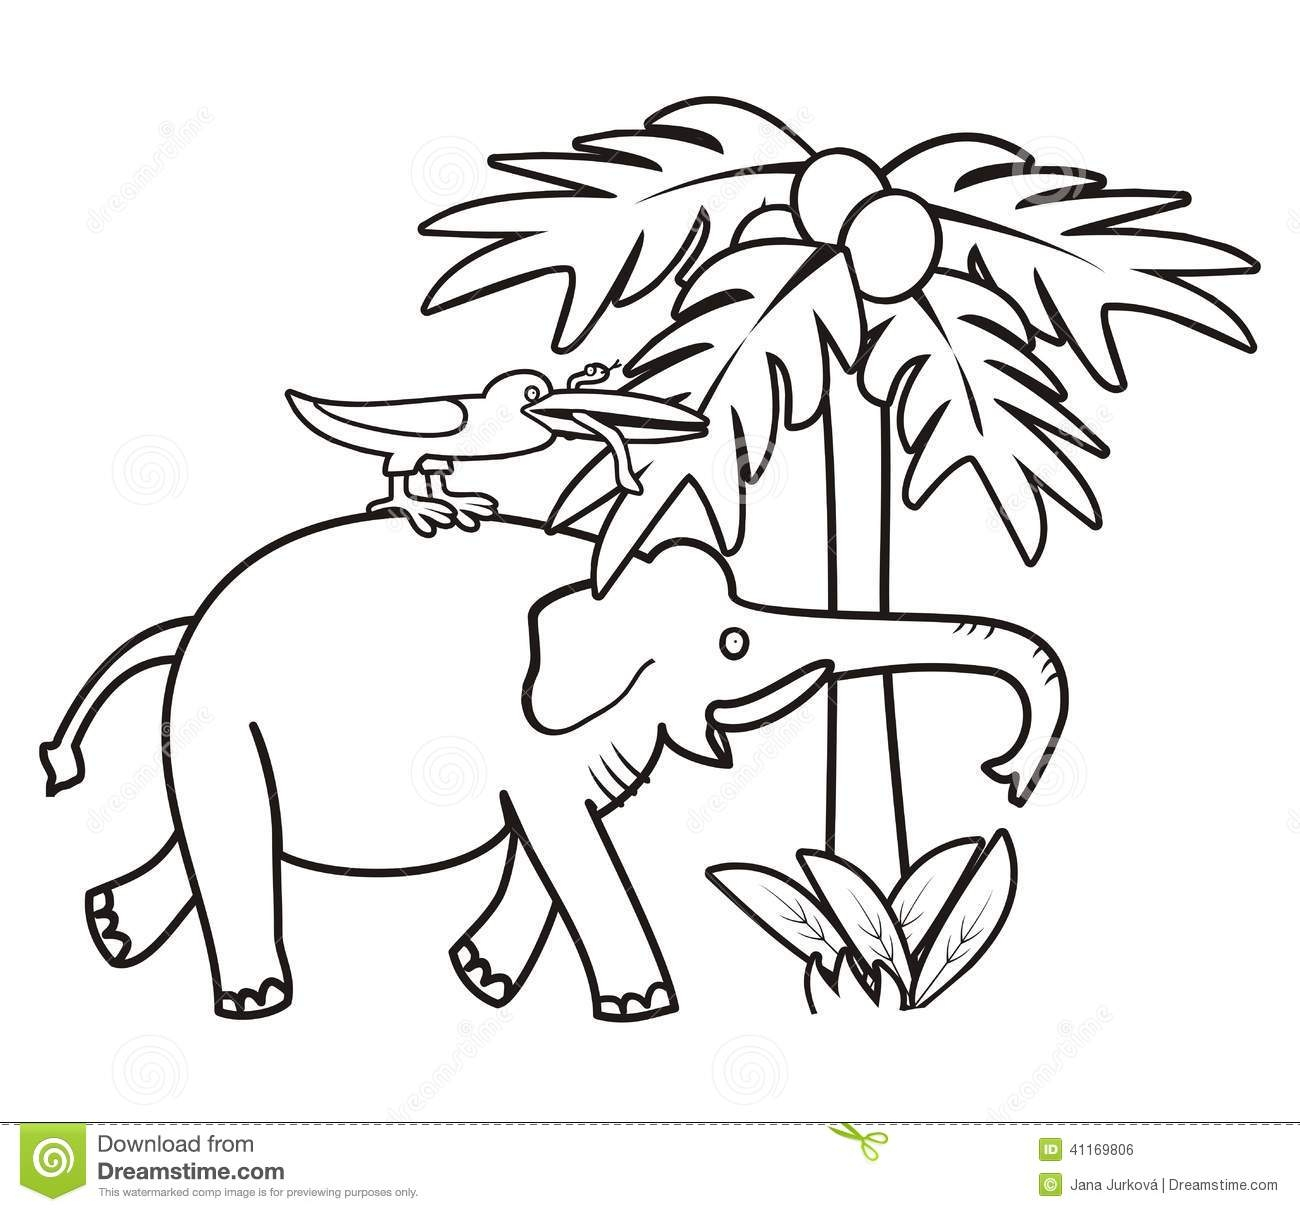 25 Reptile Coloring Pages Images | FREE COLORING PAGES